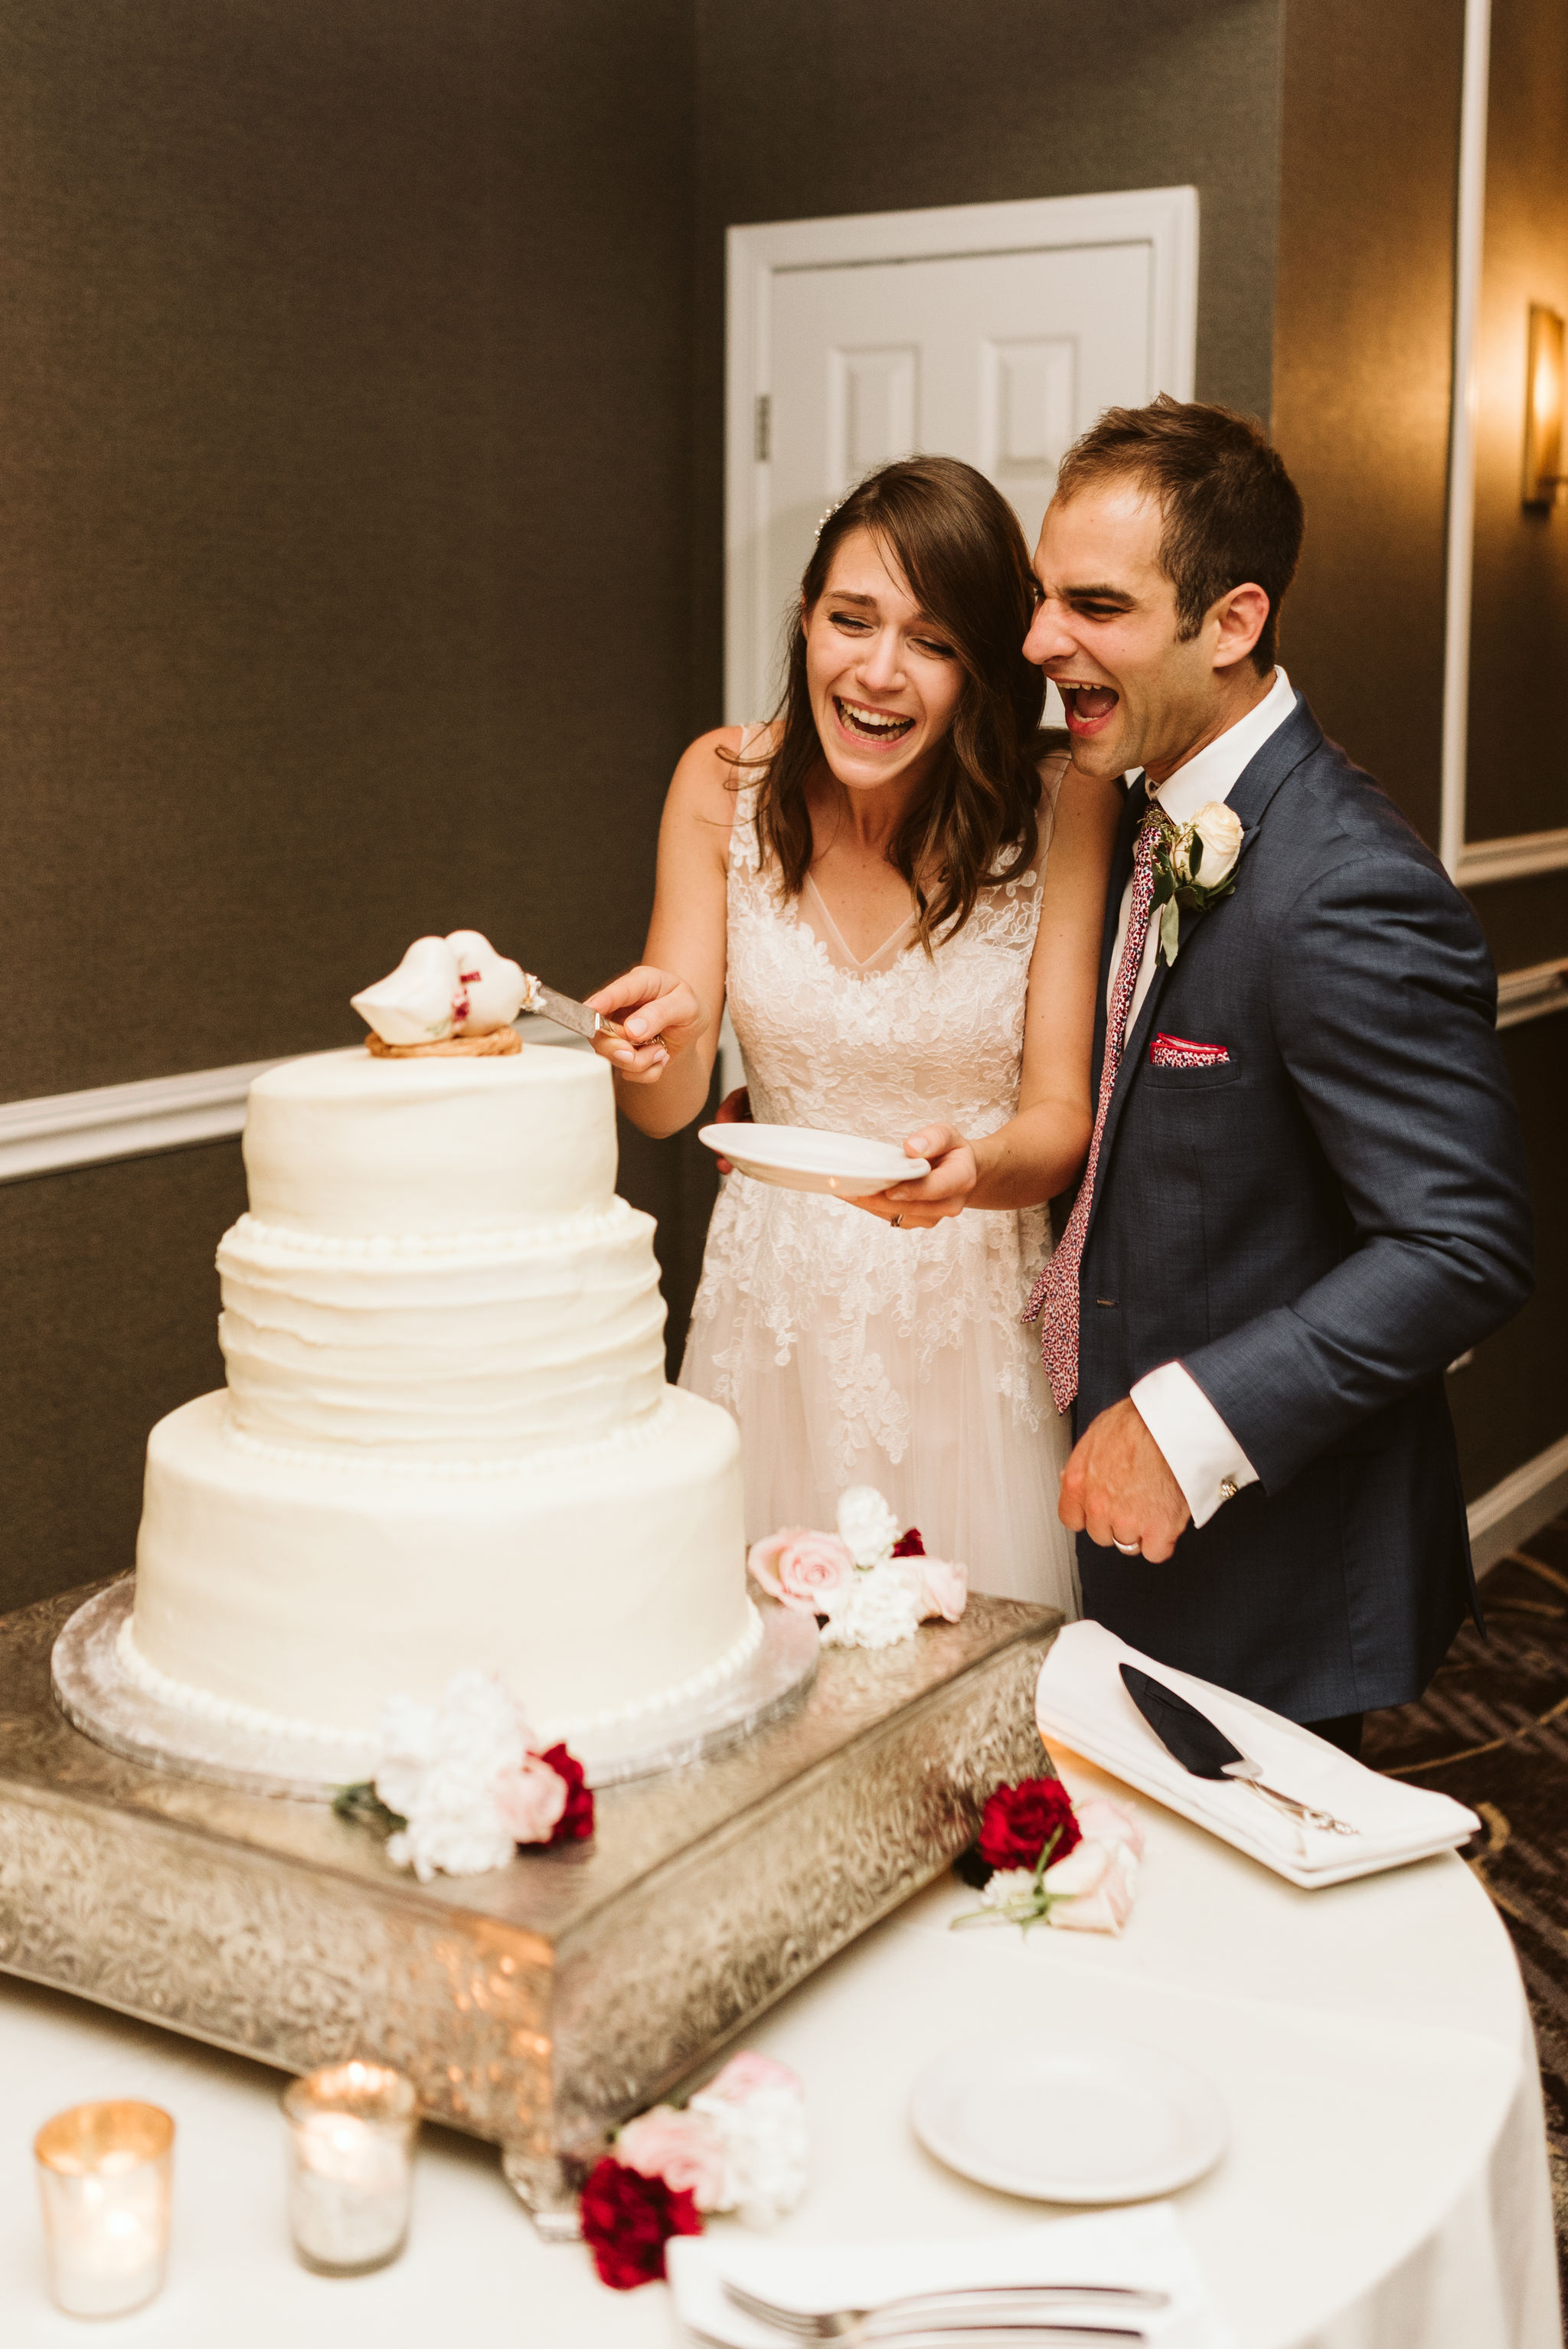 Phoenix Maryland, Baltimore Wedding Photographer, Eagle's Nest Country Club, Classic, Romantic, Bride and Groom Laughing While Cutting the Wedding Cake, Graul's Market